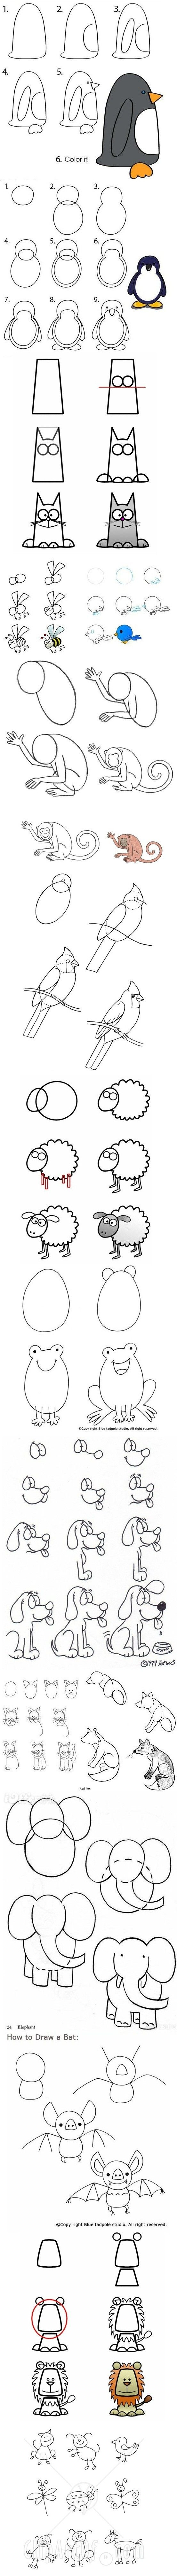 Project - how to draw animals